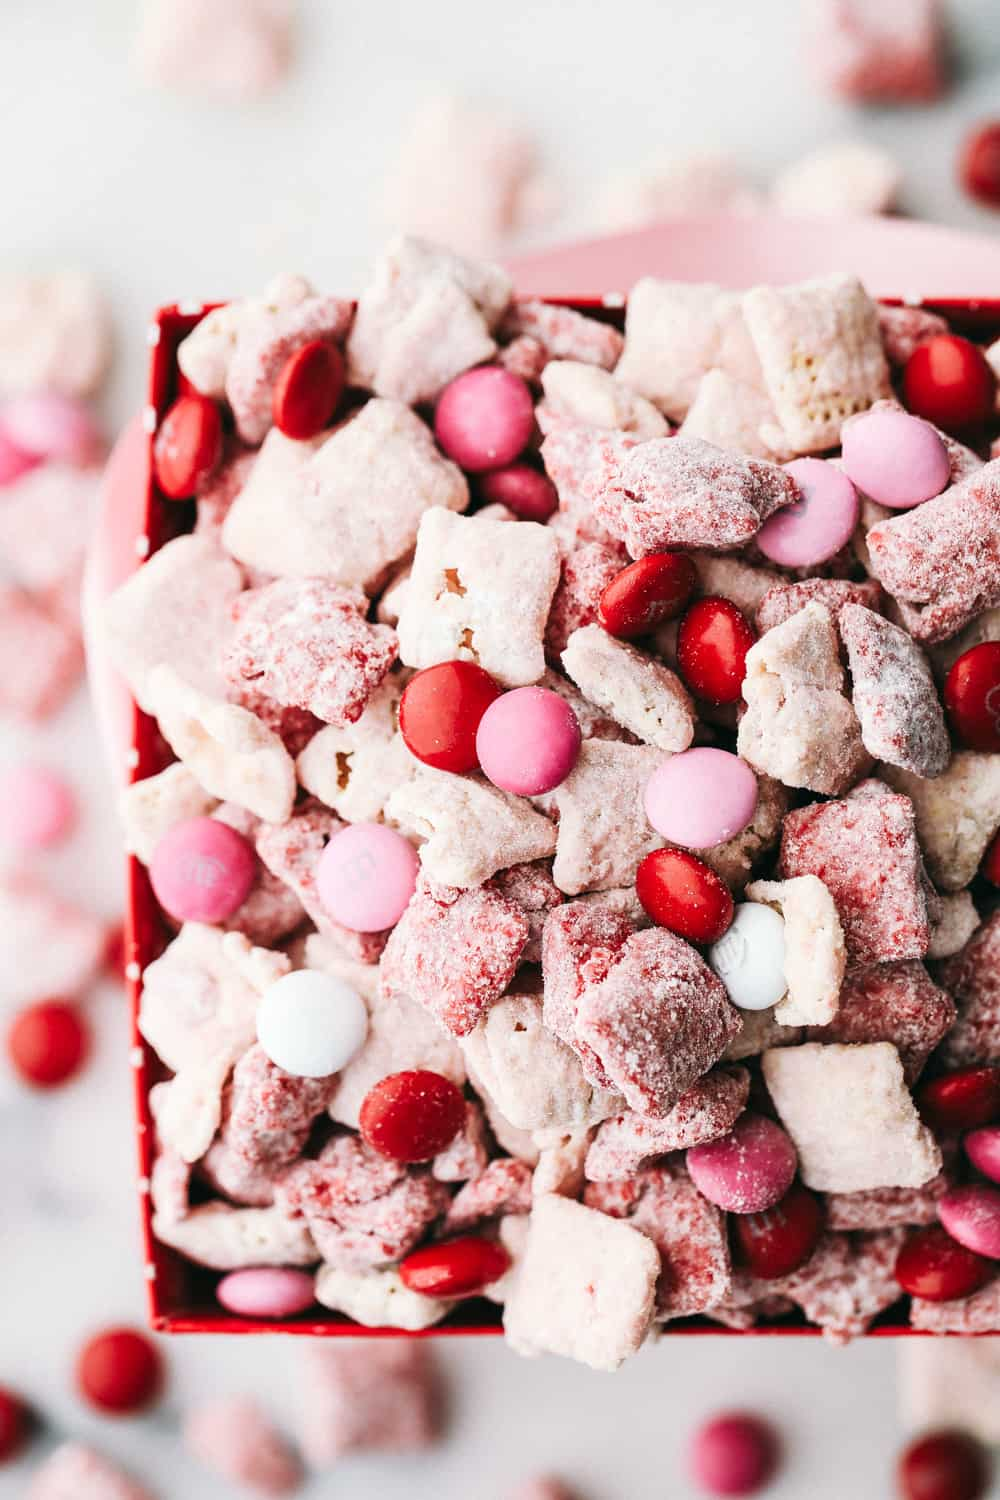 Overhead shot of Sweetheart Valentine's buddies in a red box.